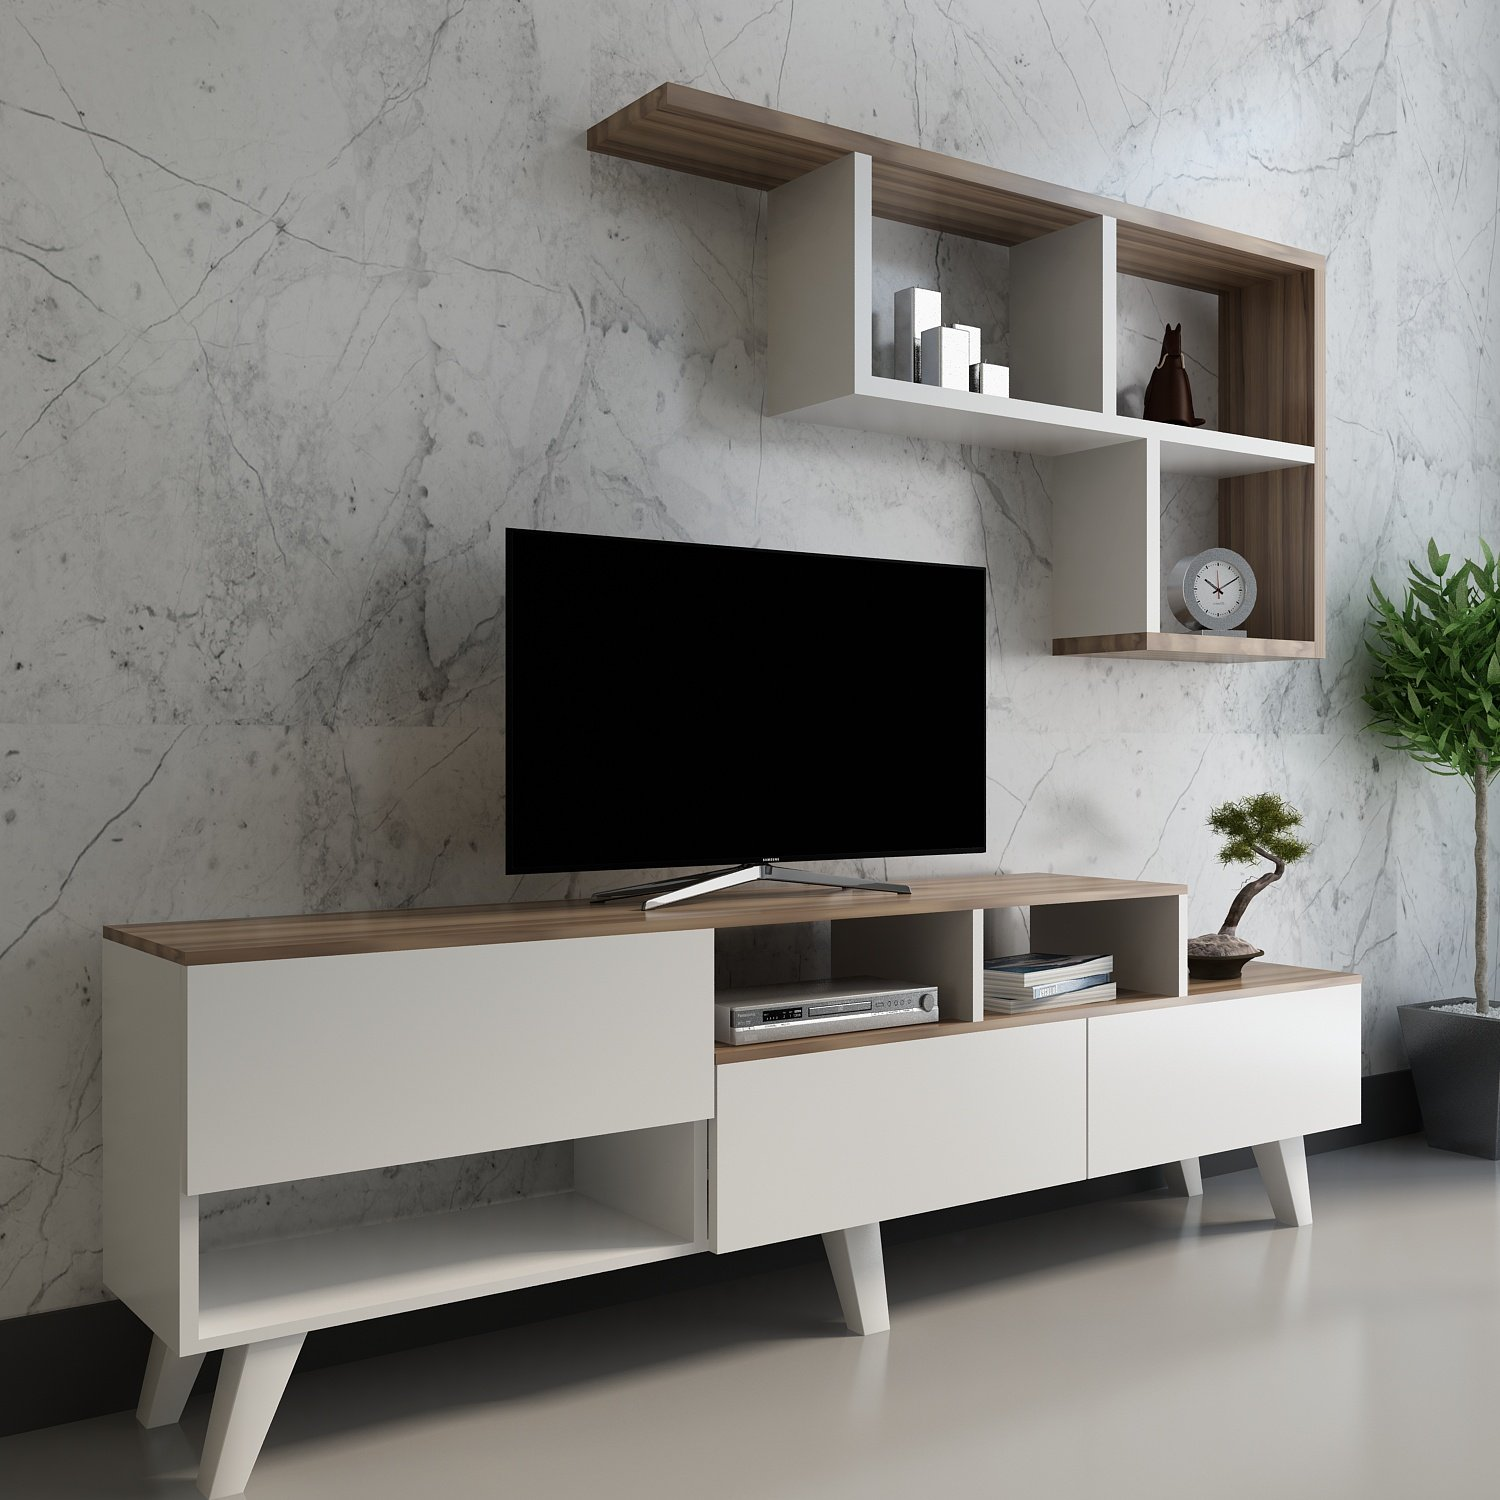 Mobilier50092